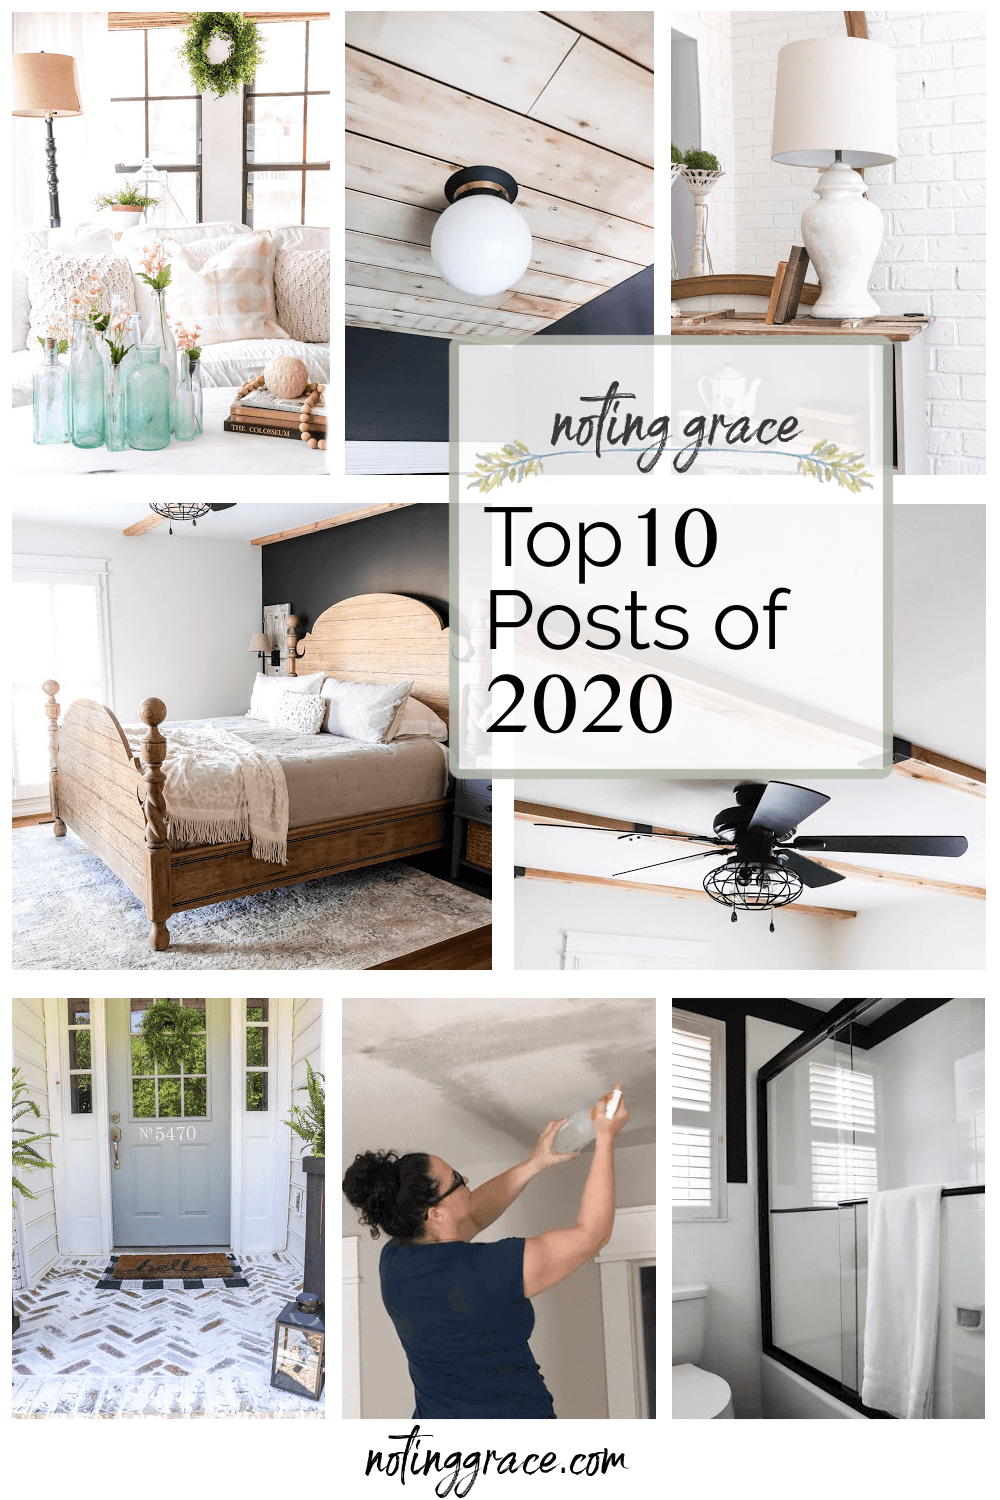 Welcome Home SUnday: Top 10 Posts of 2020